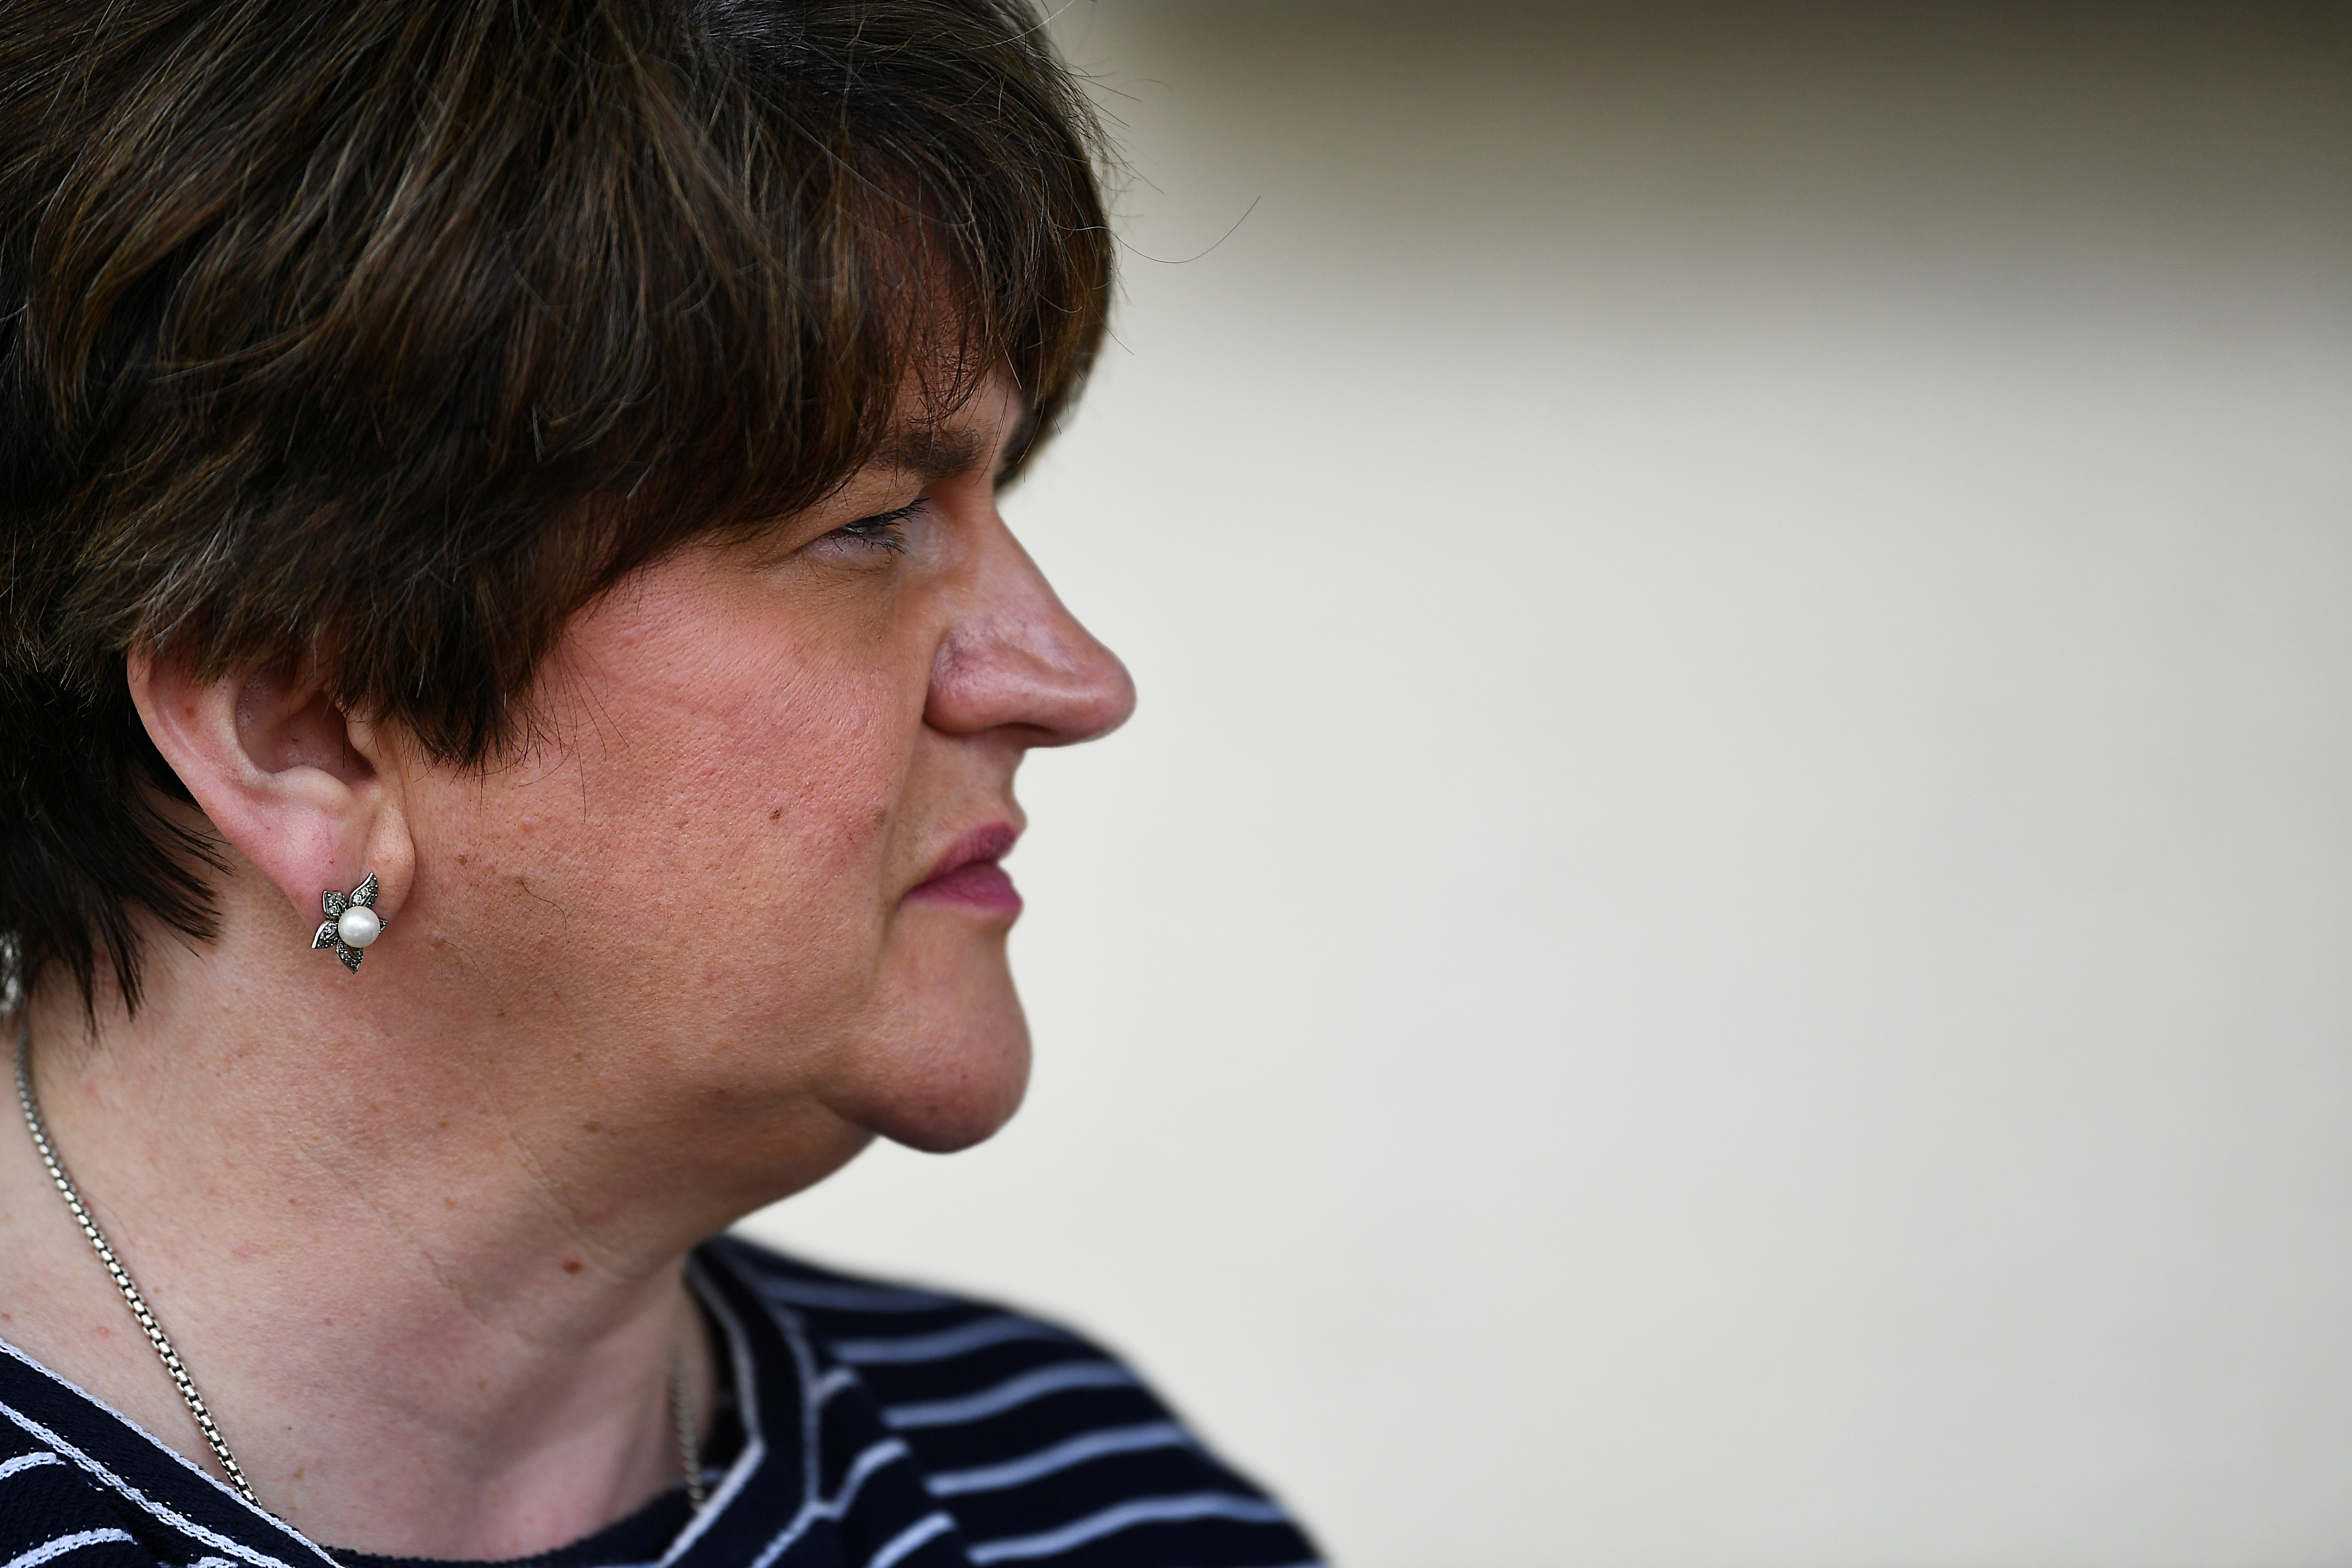 Northern Ireland's First Minister Arlene Foster looks on outside the Strand Cinema, as coronavirus disease (COVID-19) restrictions begin to ease in Belfast, Northern Ireland, May 24, 2021. REUTERS/Clodagh Kilcoyne/File Photo